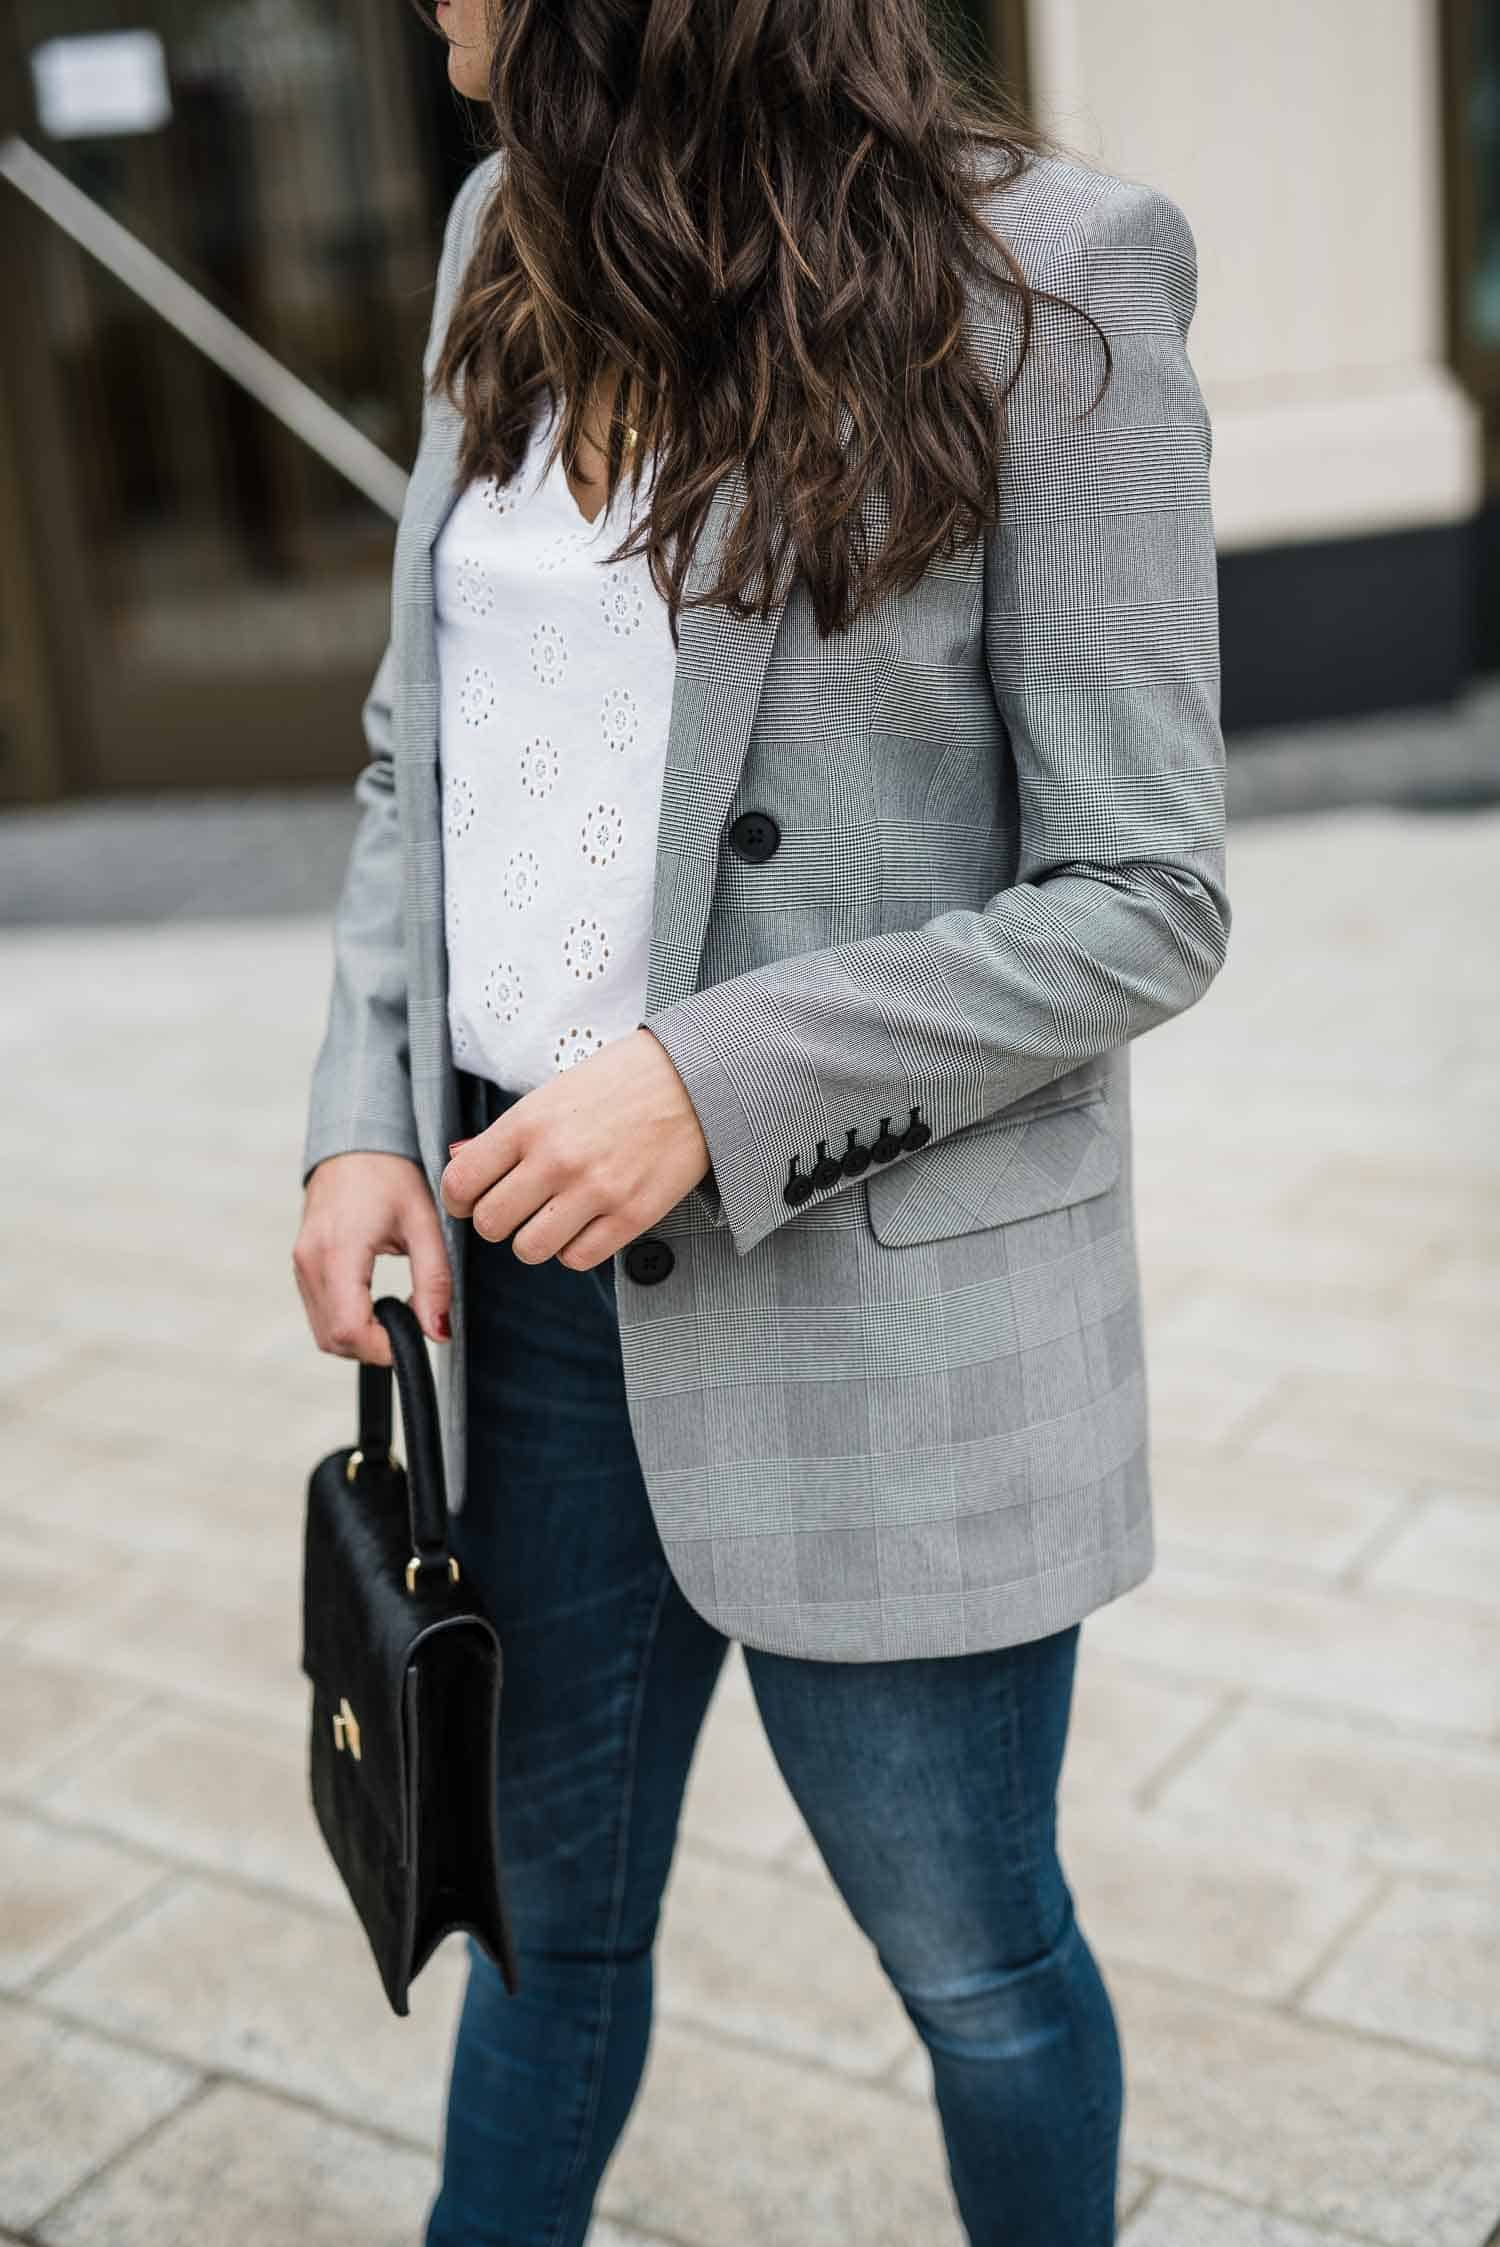 blazer for fall, fall oversized blazer, fall outfit ideas, styling summer outfits into fall - My Style Vita